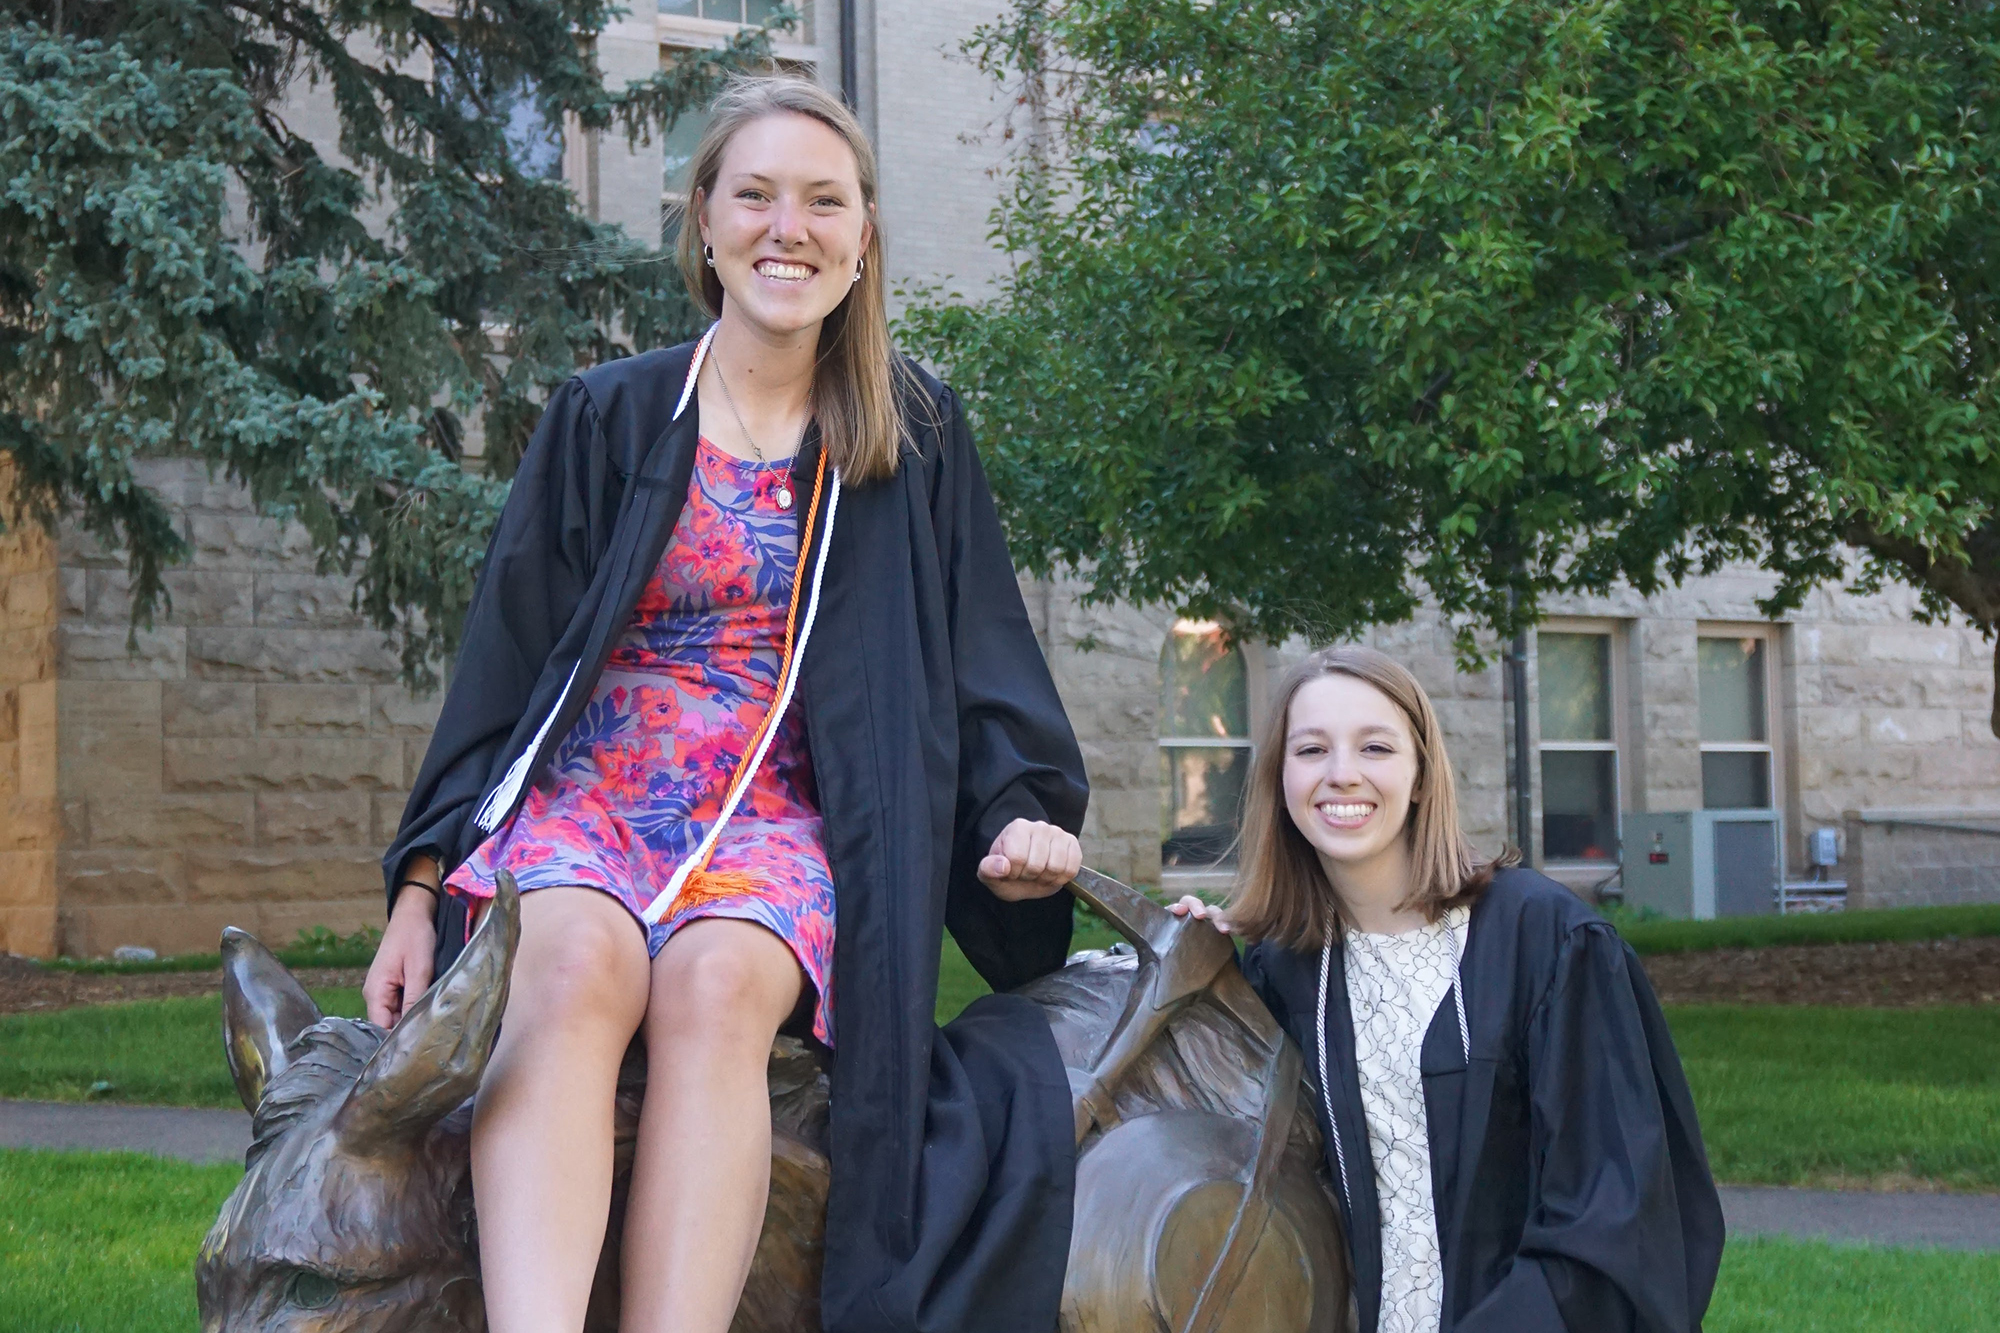 Claire Teklitz, left, and Elise Madonna pose in their graduation gowns with the Colorado School of Mines's bronze burros statue.